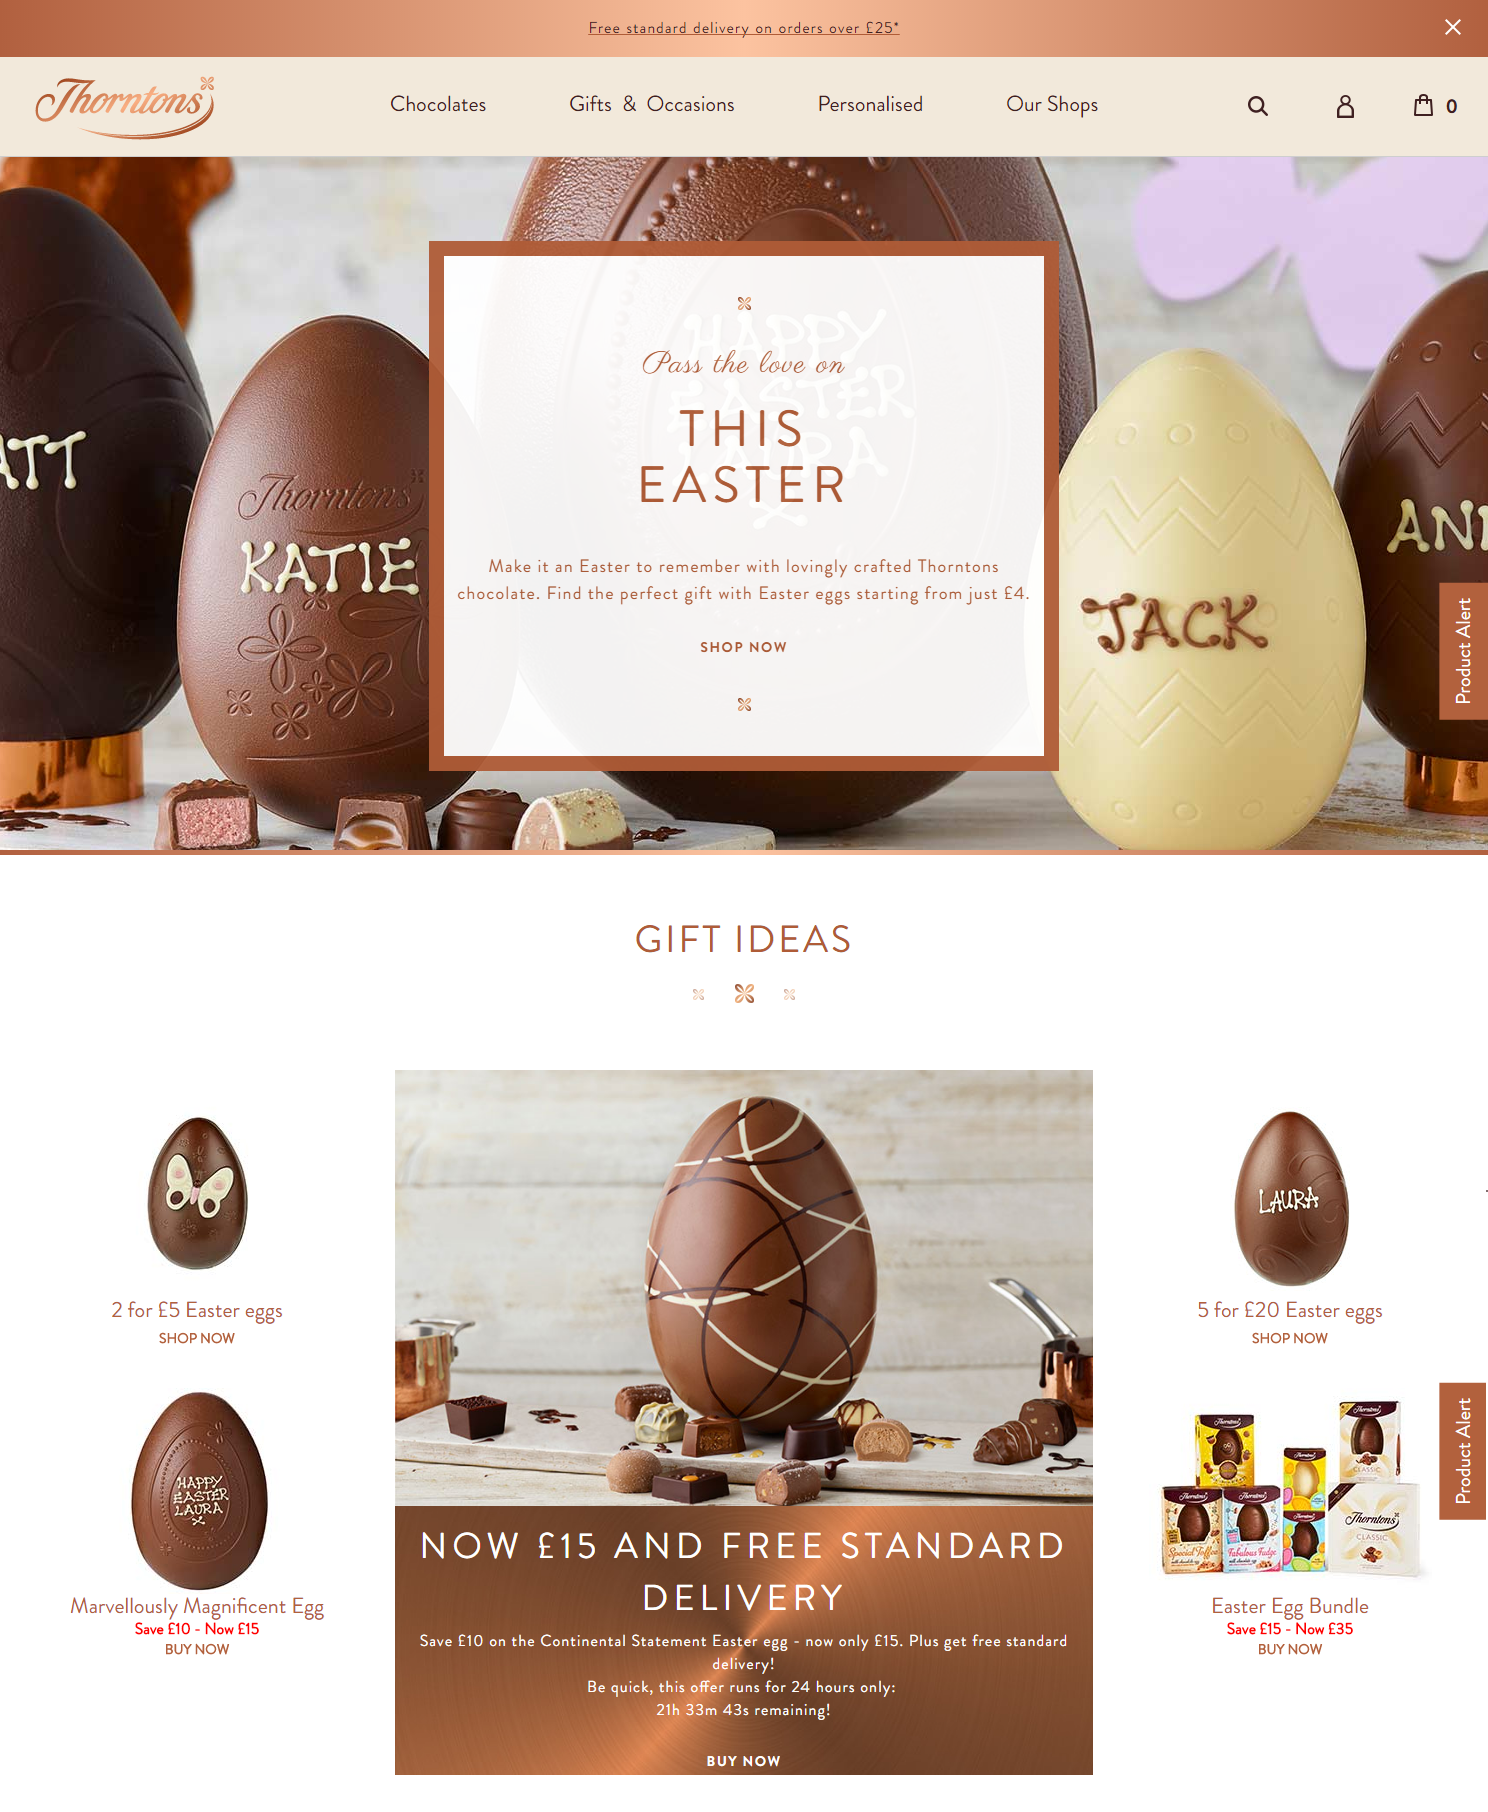 Thorntons home page with gift ideas and countdown timer to end of thorntons home page with gift ideas and countdown timer to end of offer digital easter chocolatechocolate giftscountdown timersmarketing negle Gallery